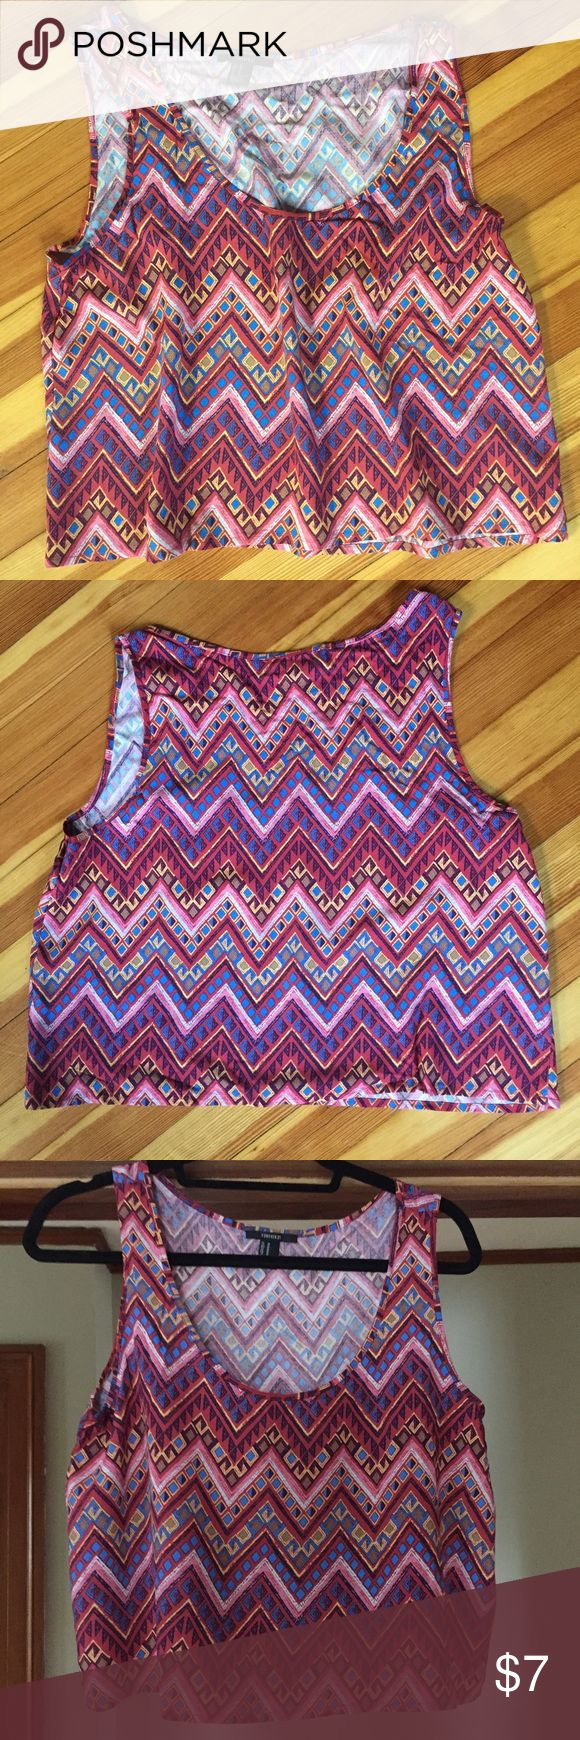 Aztec Crop Top Forever 21 Aztec Crop Top. NWOT. Combine this with any other tank or Crop Top for $10! Get in time for warm weather ☀️ Forever 21 Tops Crop Tops